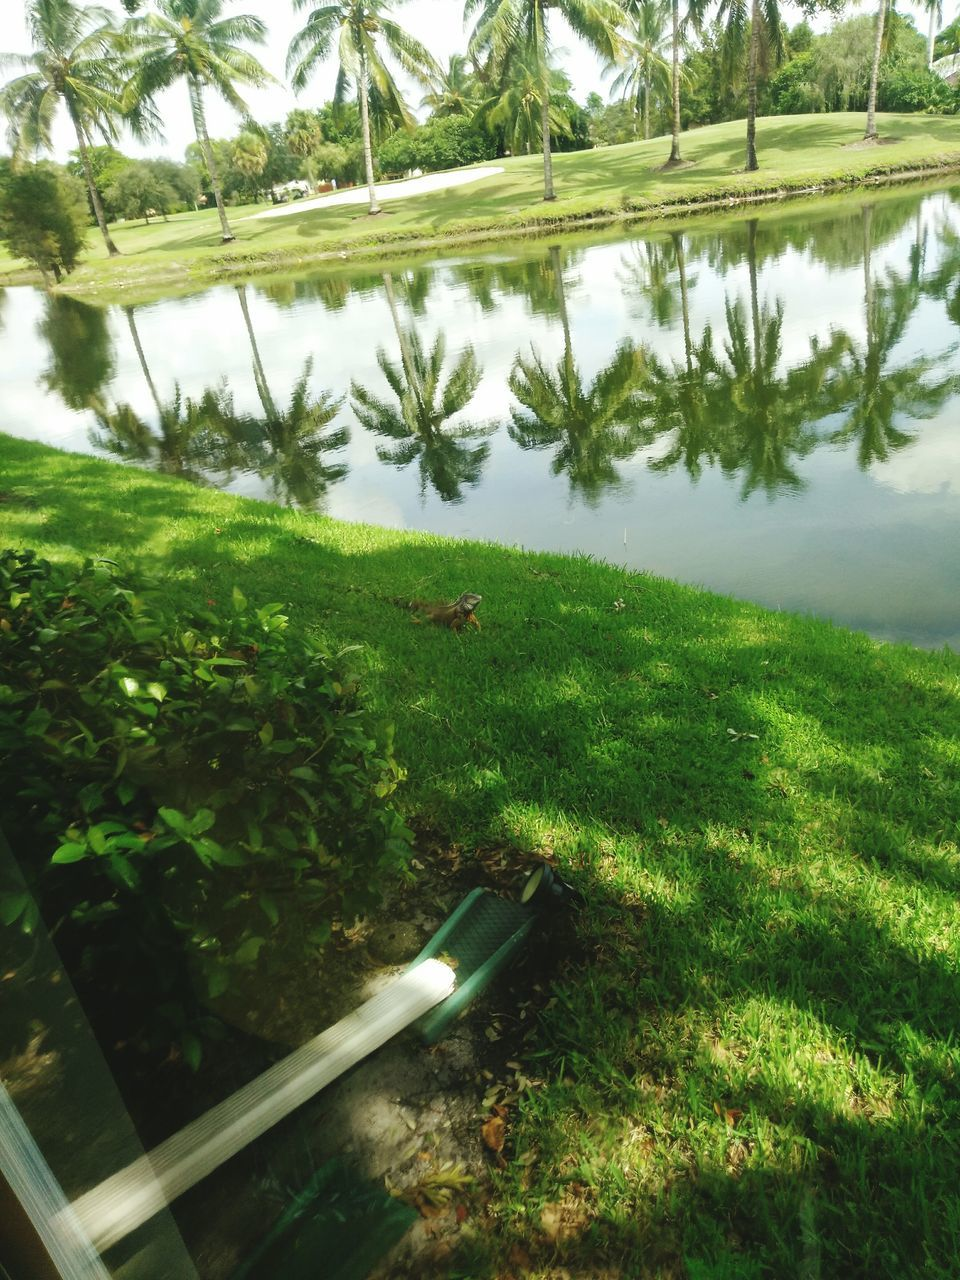 grass, nature, green color, water, day, tree, outdoors, no people, growth, tranquility, reflection, tranquil scene, field, beauty in nature, landscape, plant, scenics, lake, sky